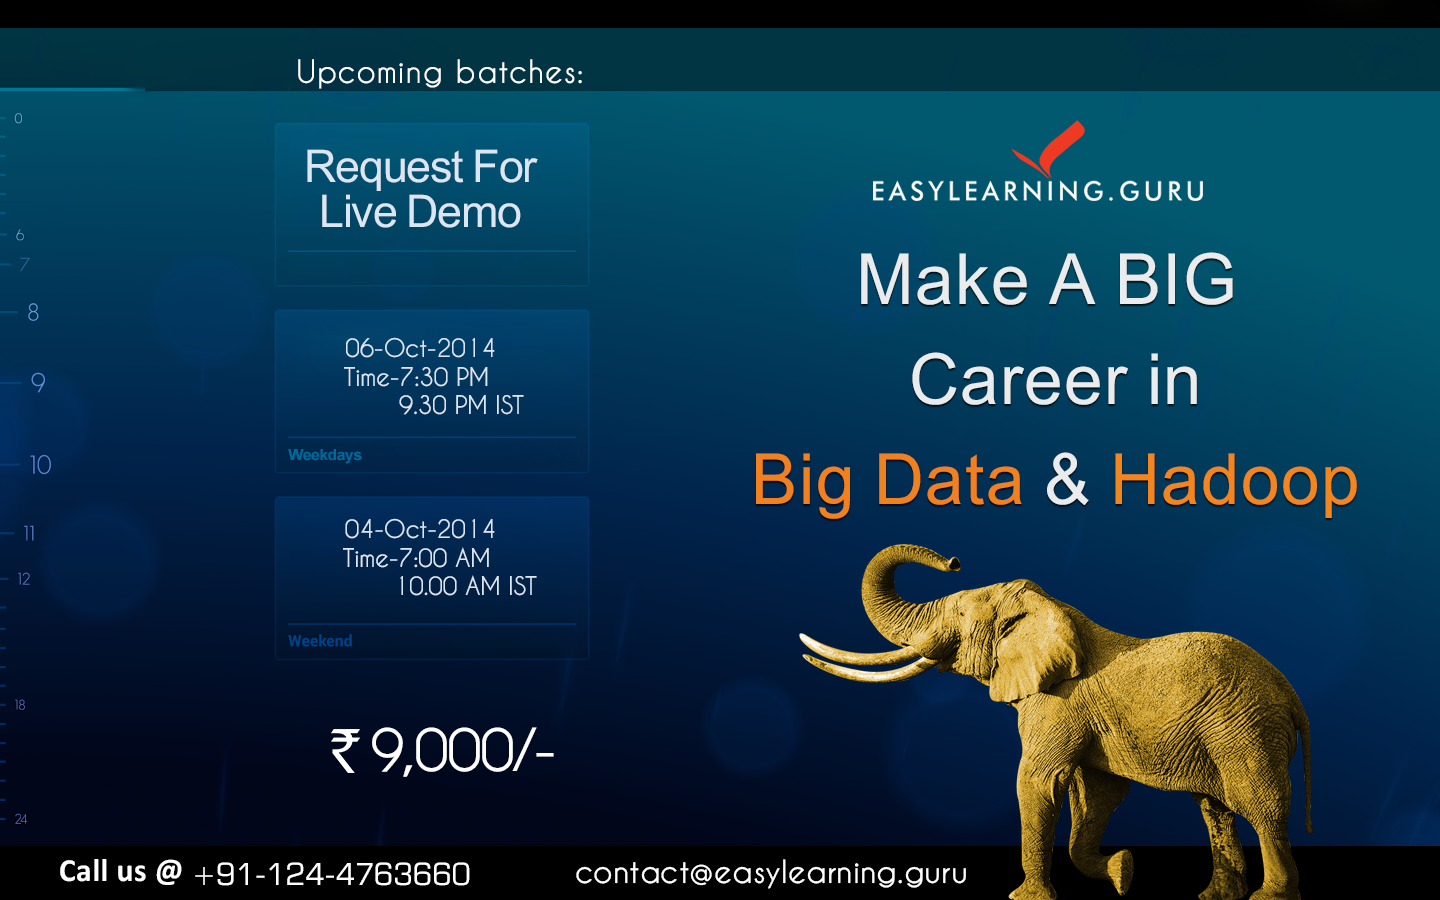 EasyLearning Guru Provides Instructor Led Online class On #BIGDATA & #HADOOP  http://goo.gl/KfKZnz